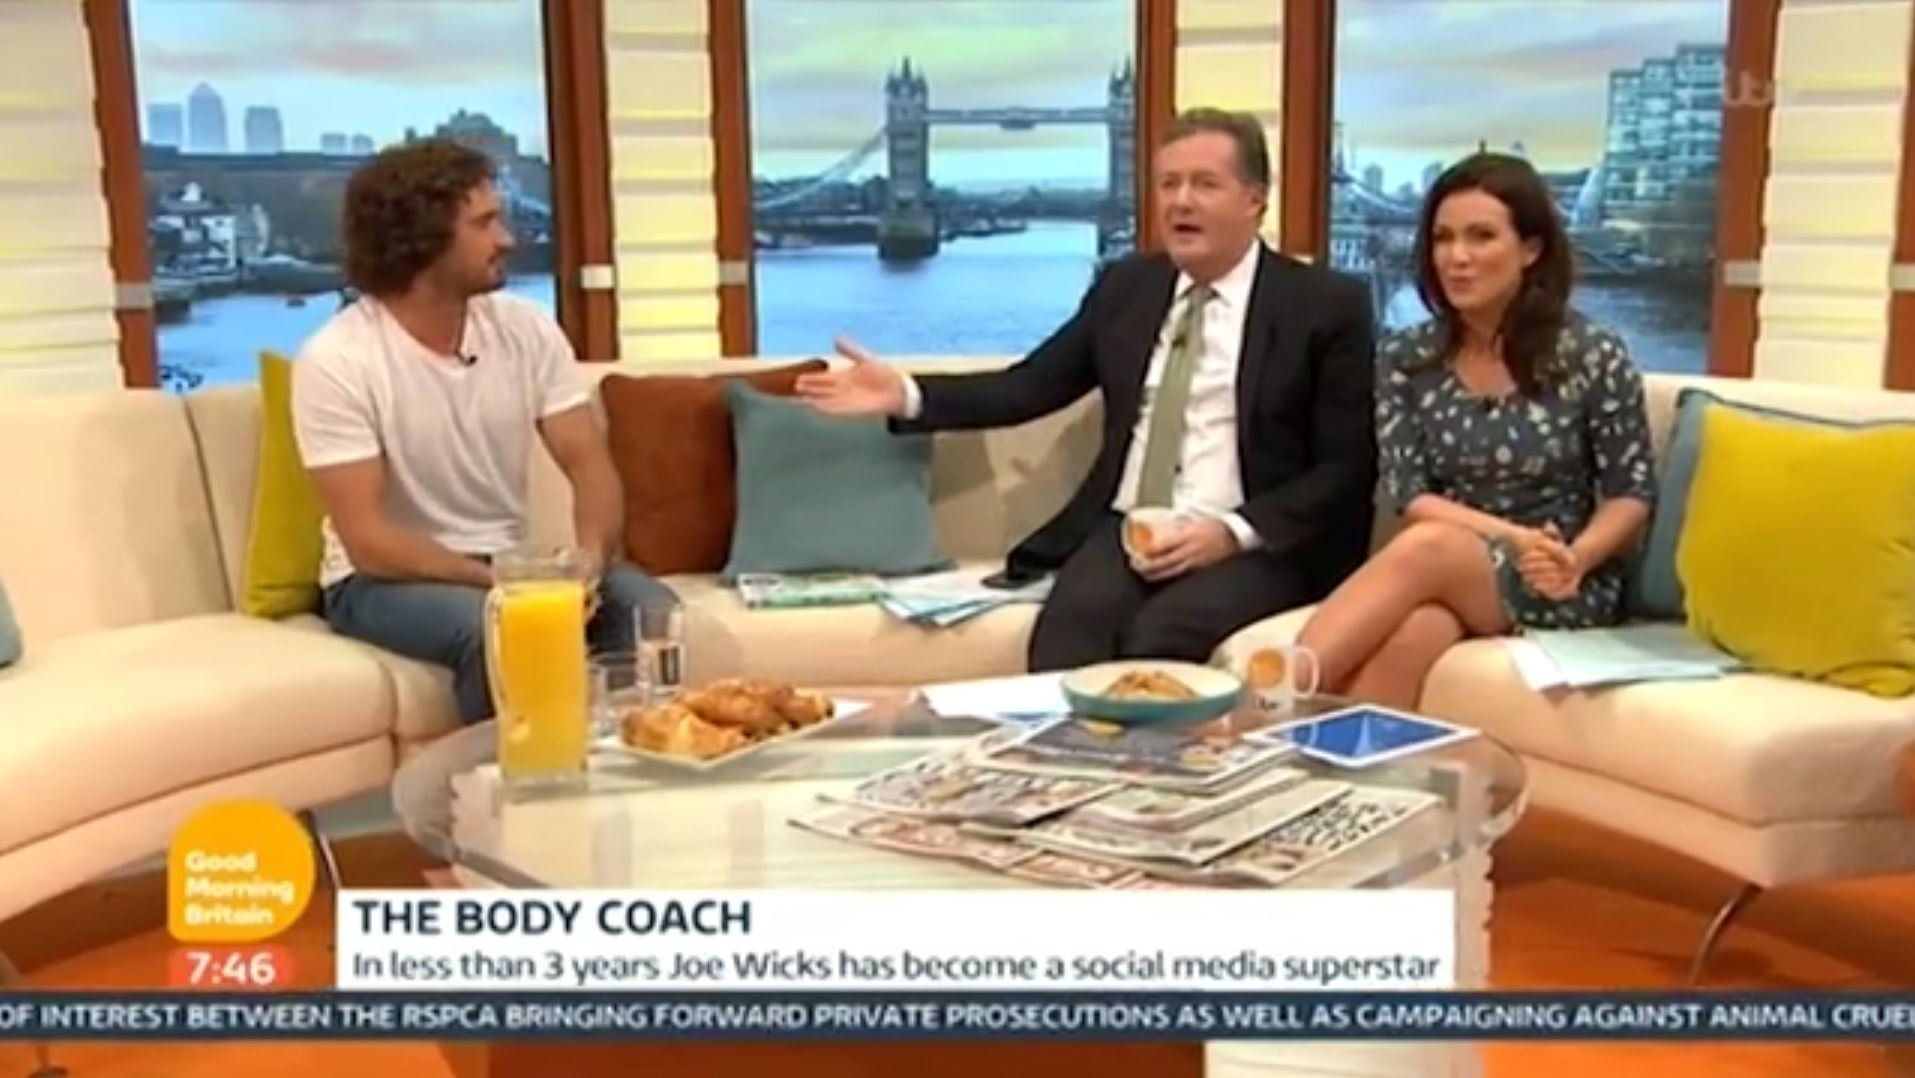 Piers Morgan Turns On The Body Coach Joe Wicks In Toe-Curling 'Good Morning Britain'